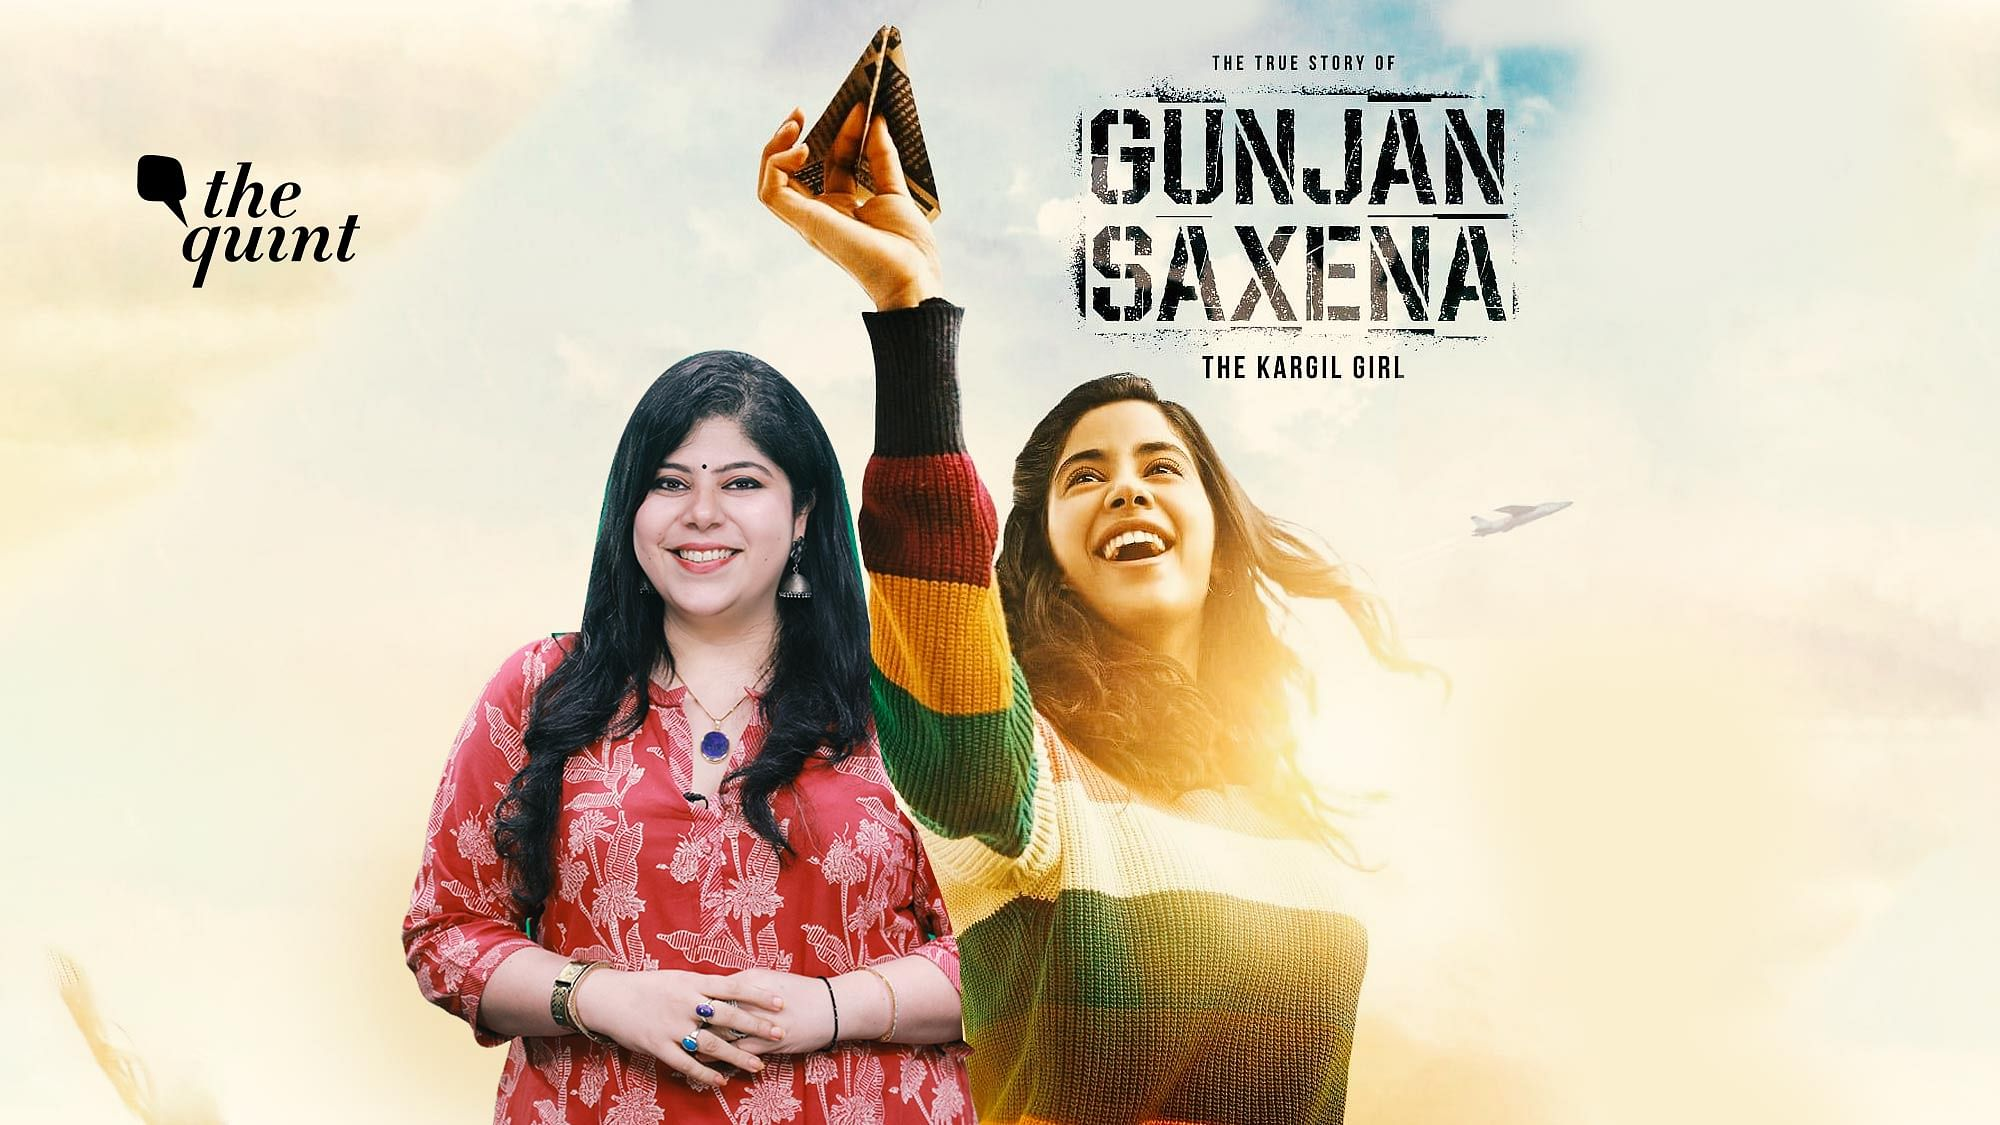 Gunjan Saxena The Kargil Girl Full Movie Review Gunjan Saxena Gets The Taut Treatment It Deserves